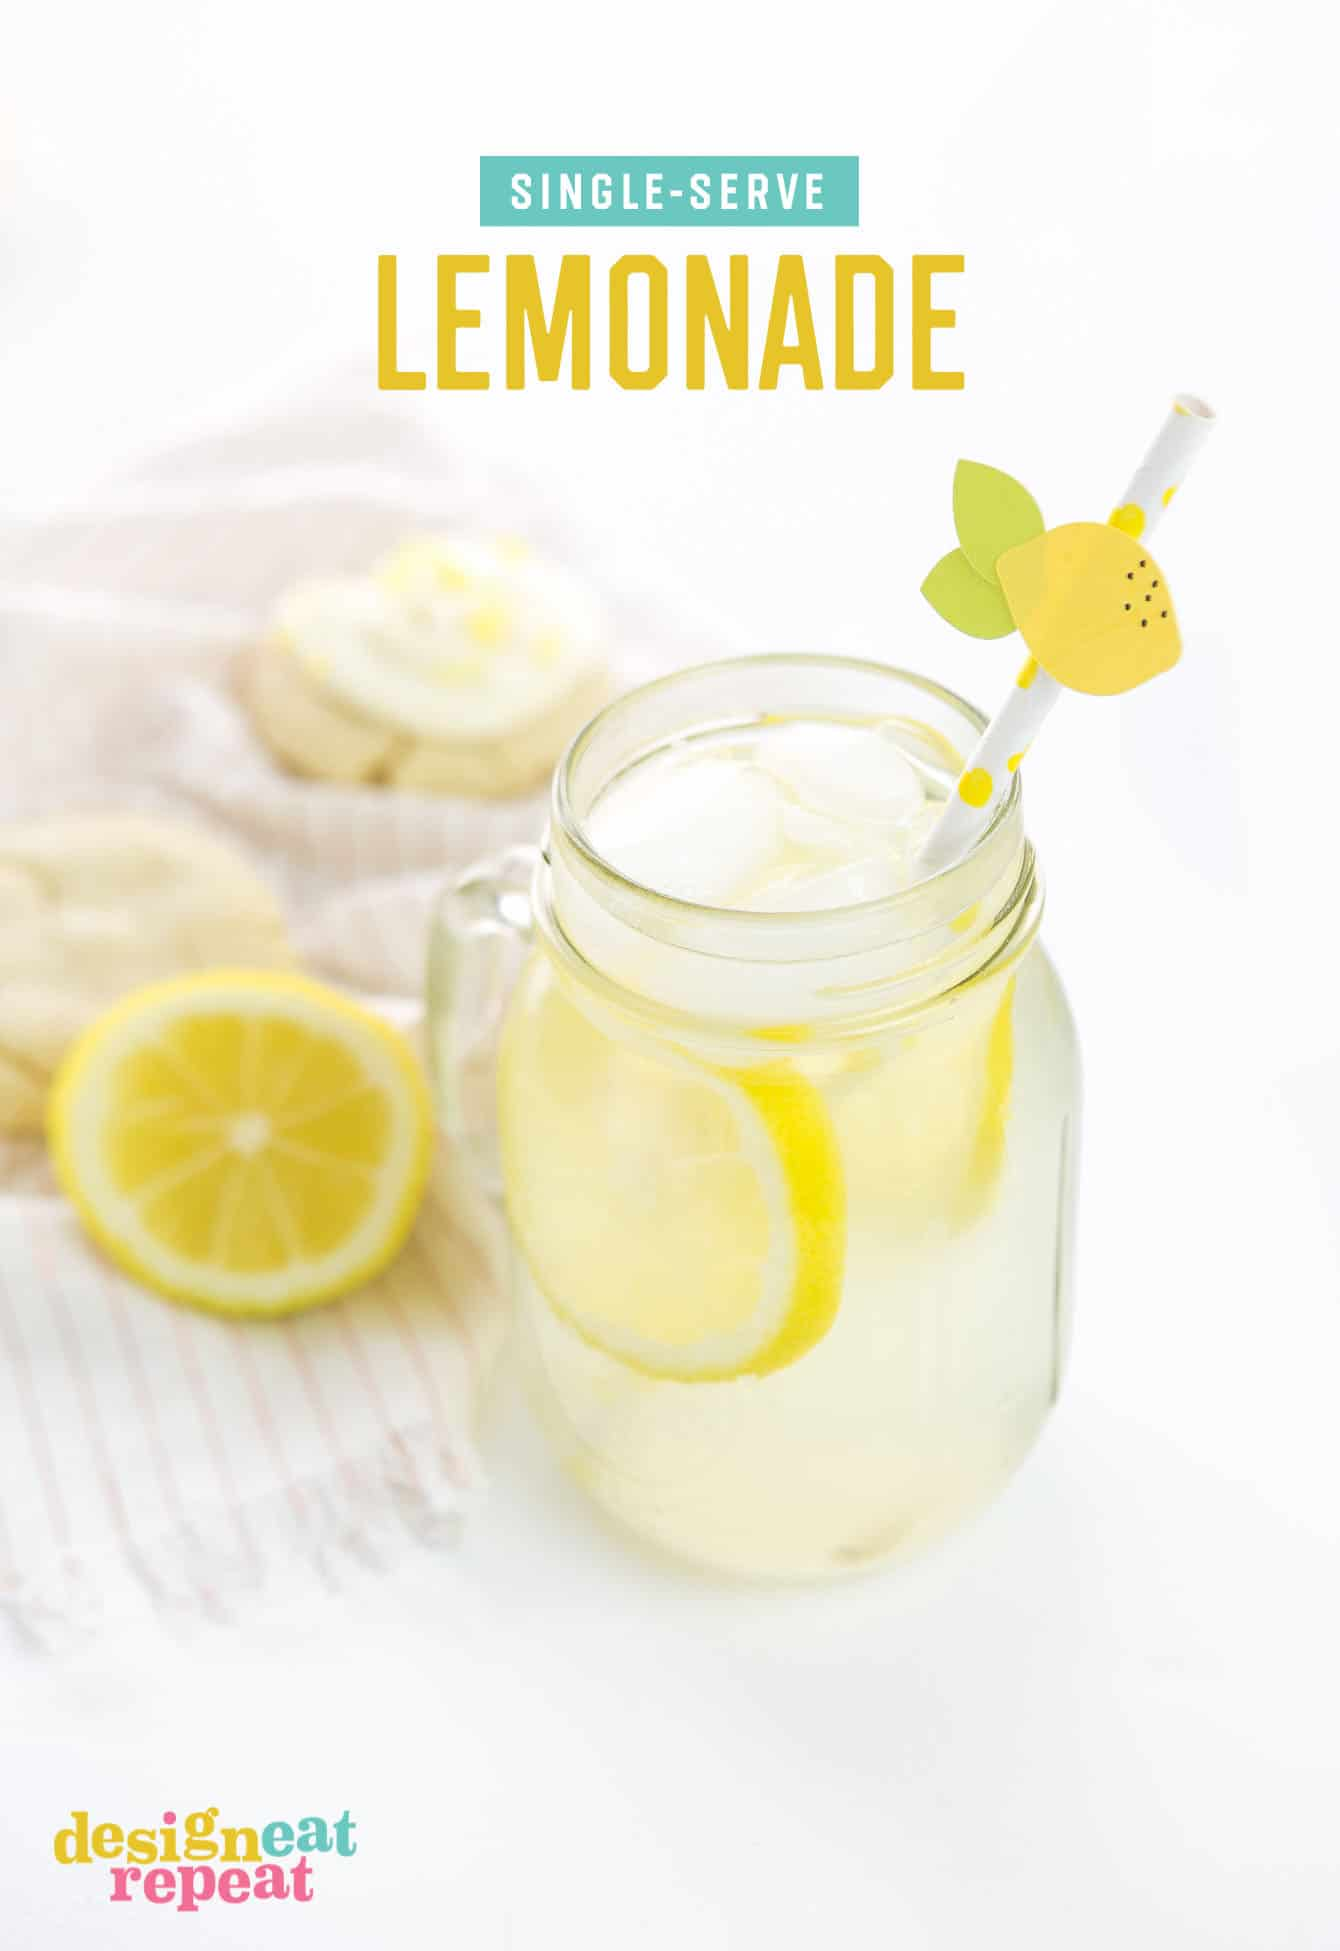 Whip up a glass of freshly squeezed lemonade in under 5 minutes with just a few ingredients! No sharing required.